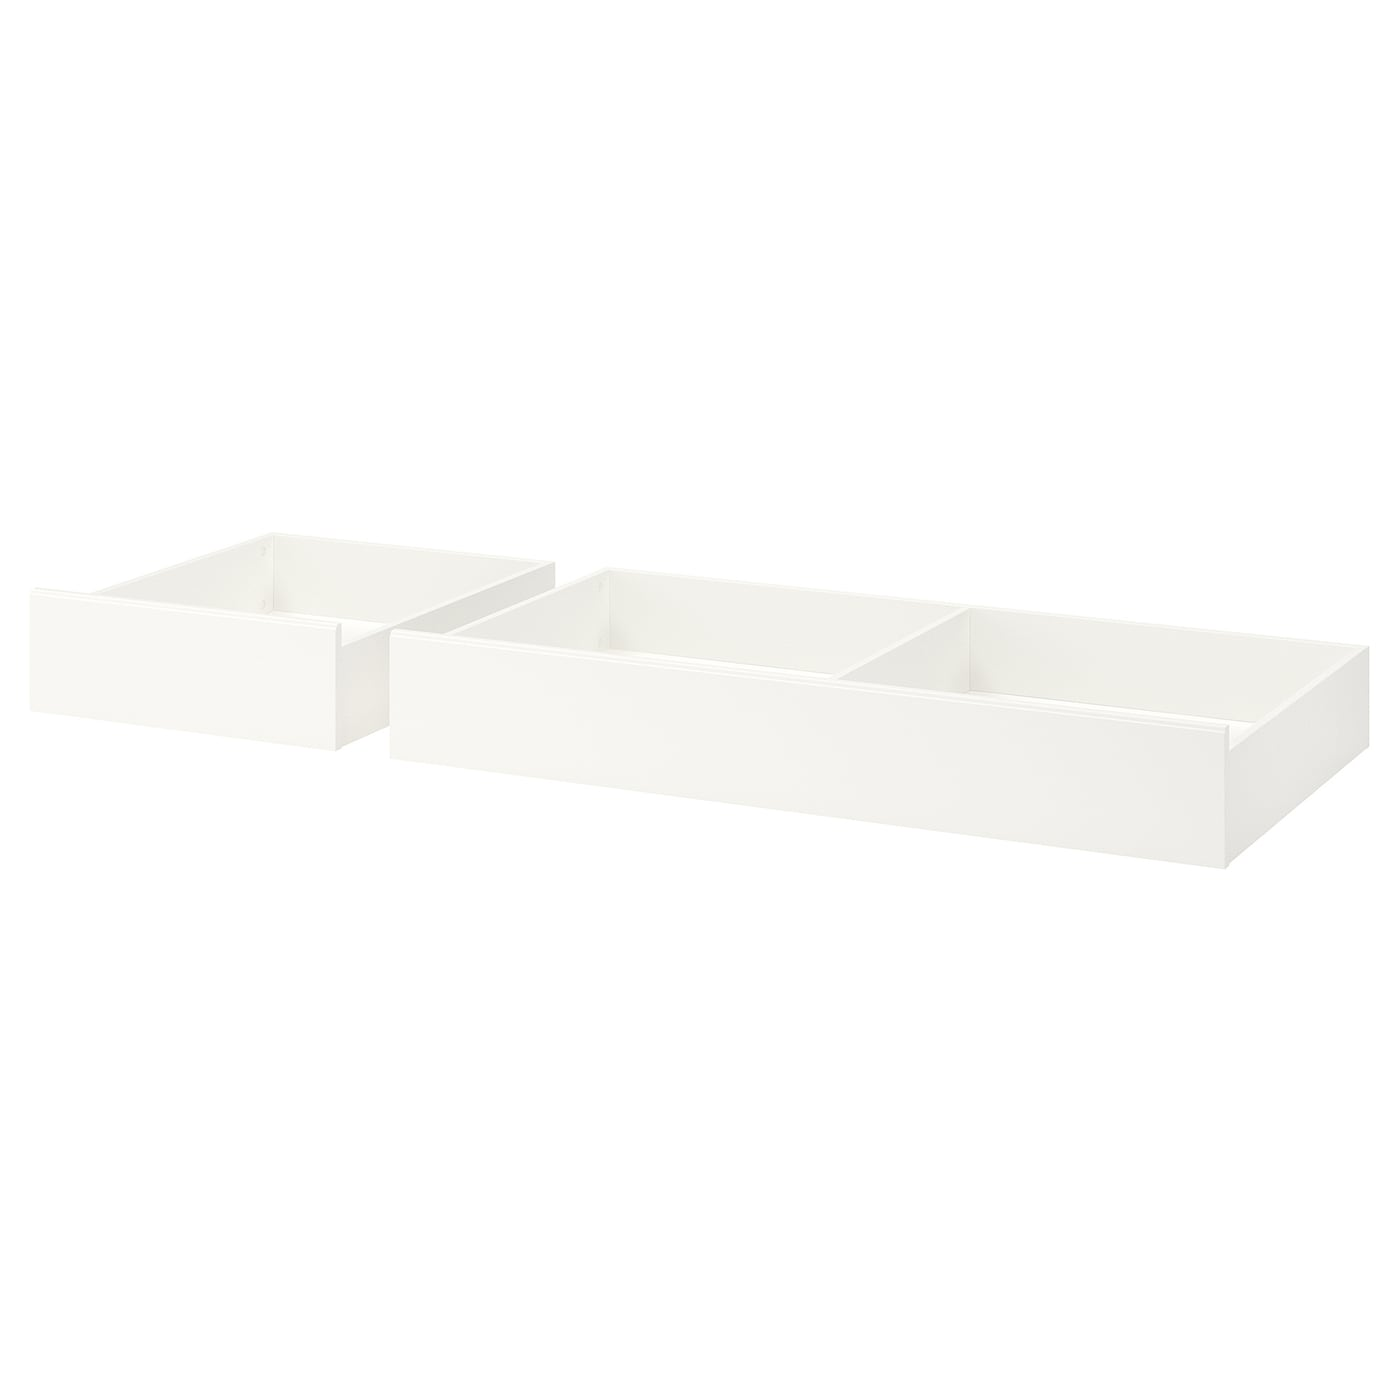 Ikea Songesand Bed Storage Box Set Of 2 Smooth Running Castors Make Content Easily Accessible